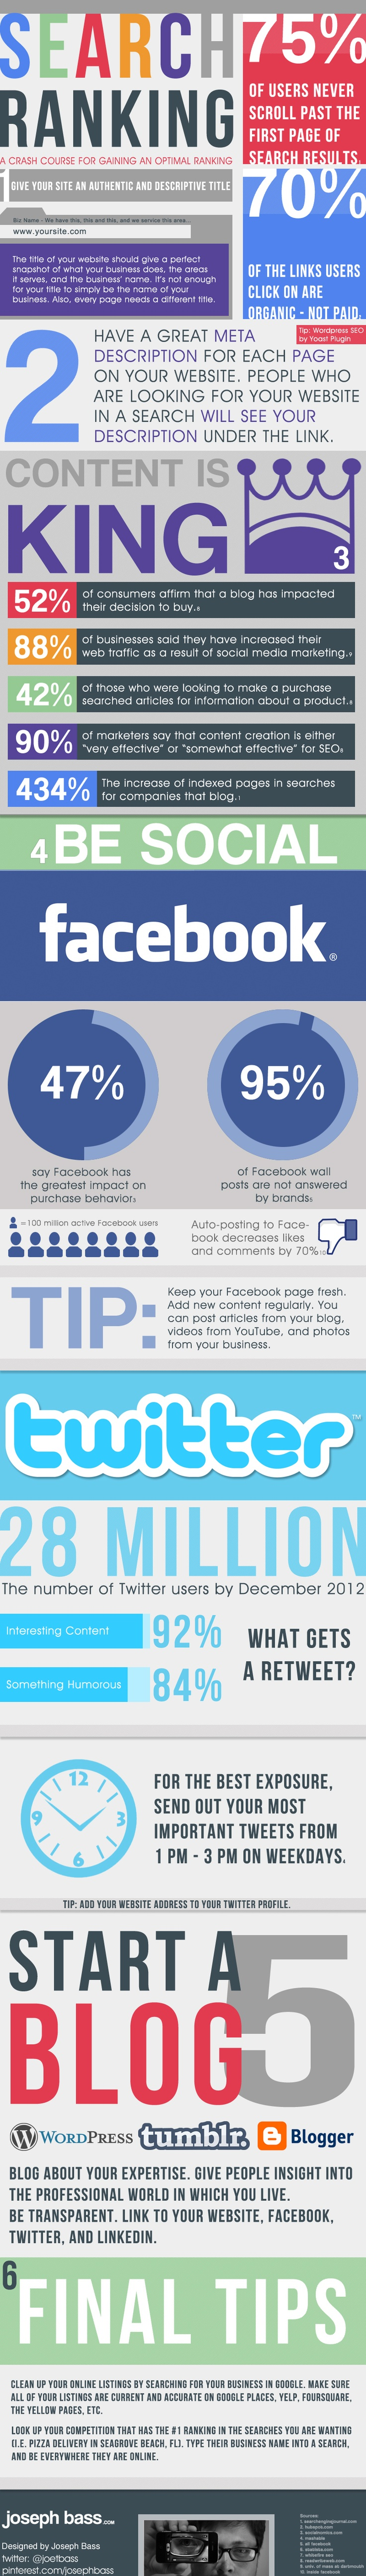 Search Ranking Infographic  via Twitter: @joetbass